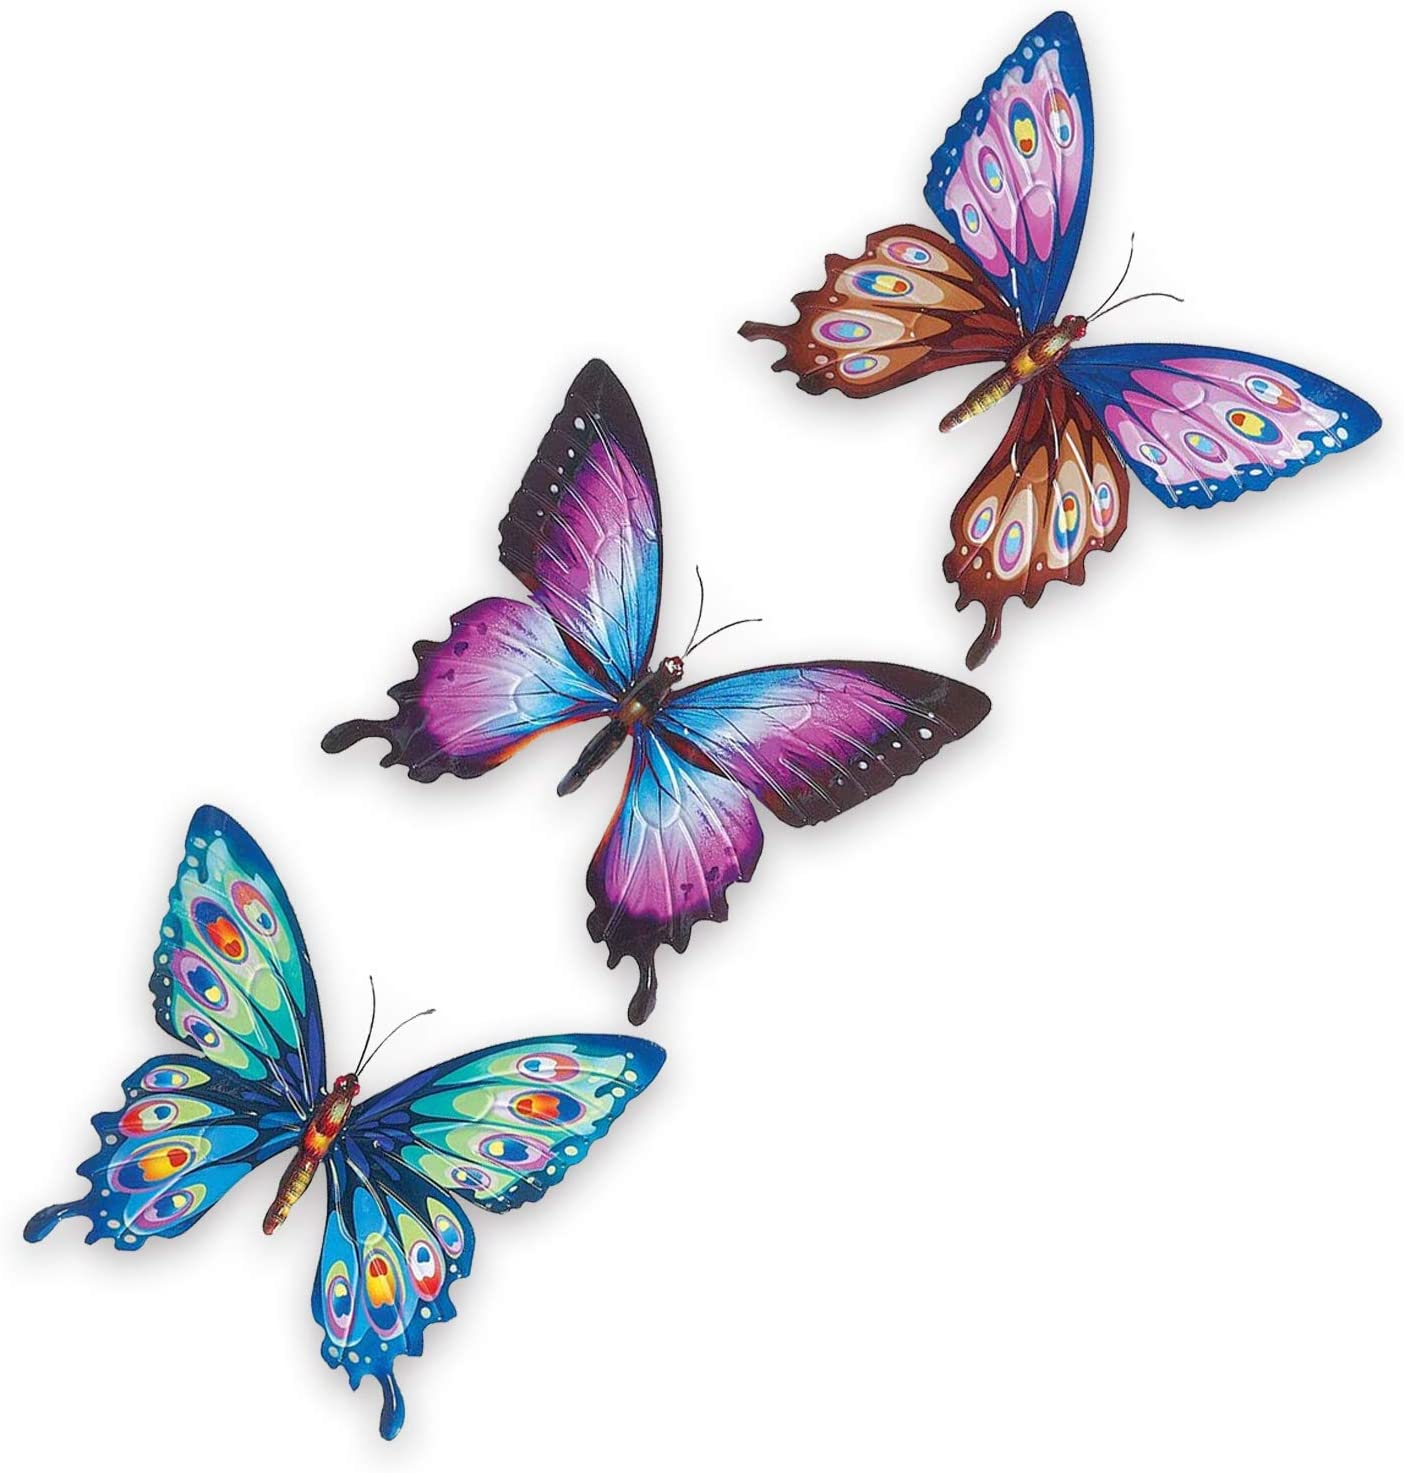 Butterfly Hanging Metal Wall Art - For Indoor, Outdoor Decoration - A Set Of 3 Stunning Natural Inspired 3D Wall Sculpture Butterfly- Perfect for Decorating Home, Bedroom, Living Room, Office, Garden